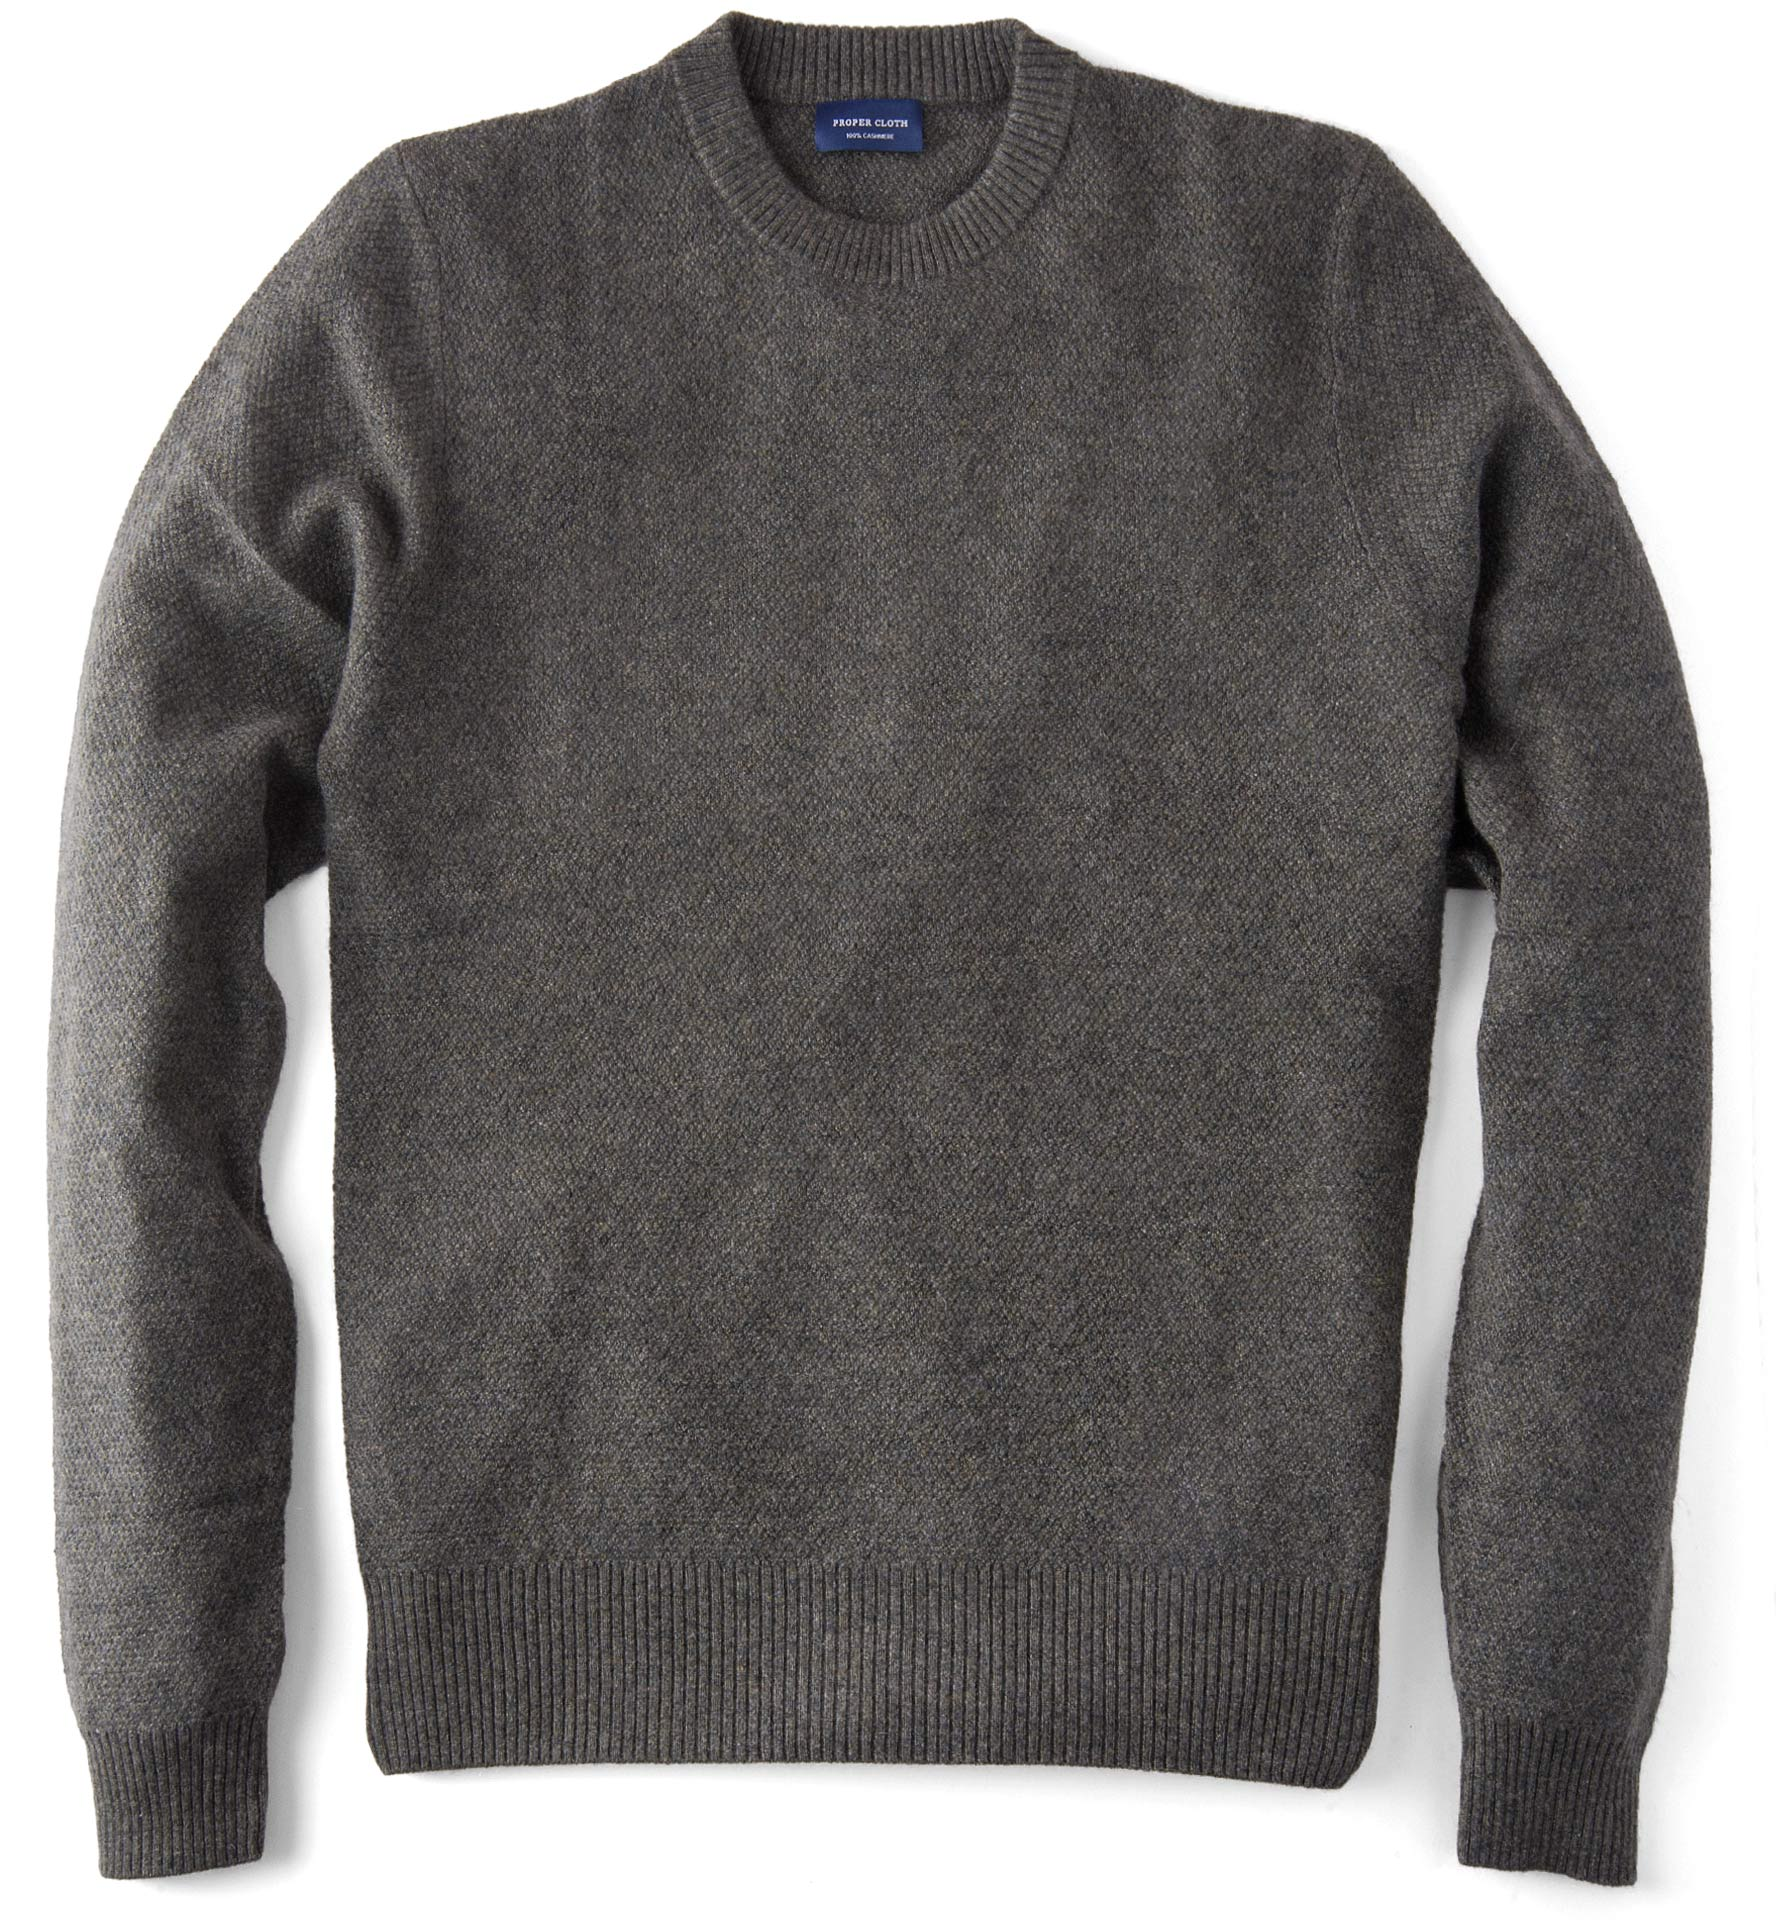 Zoom Image of Pine Cobble Stitch Cashmere Sweater